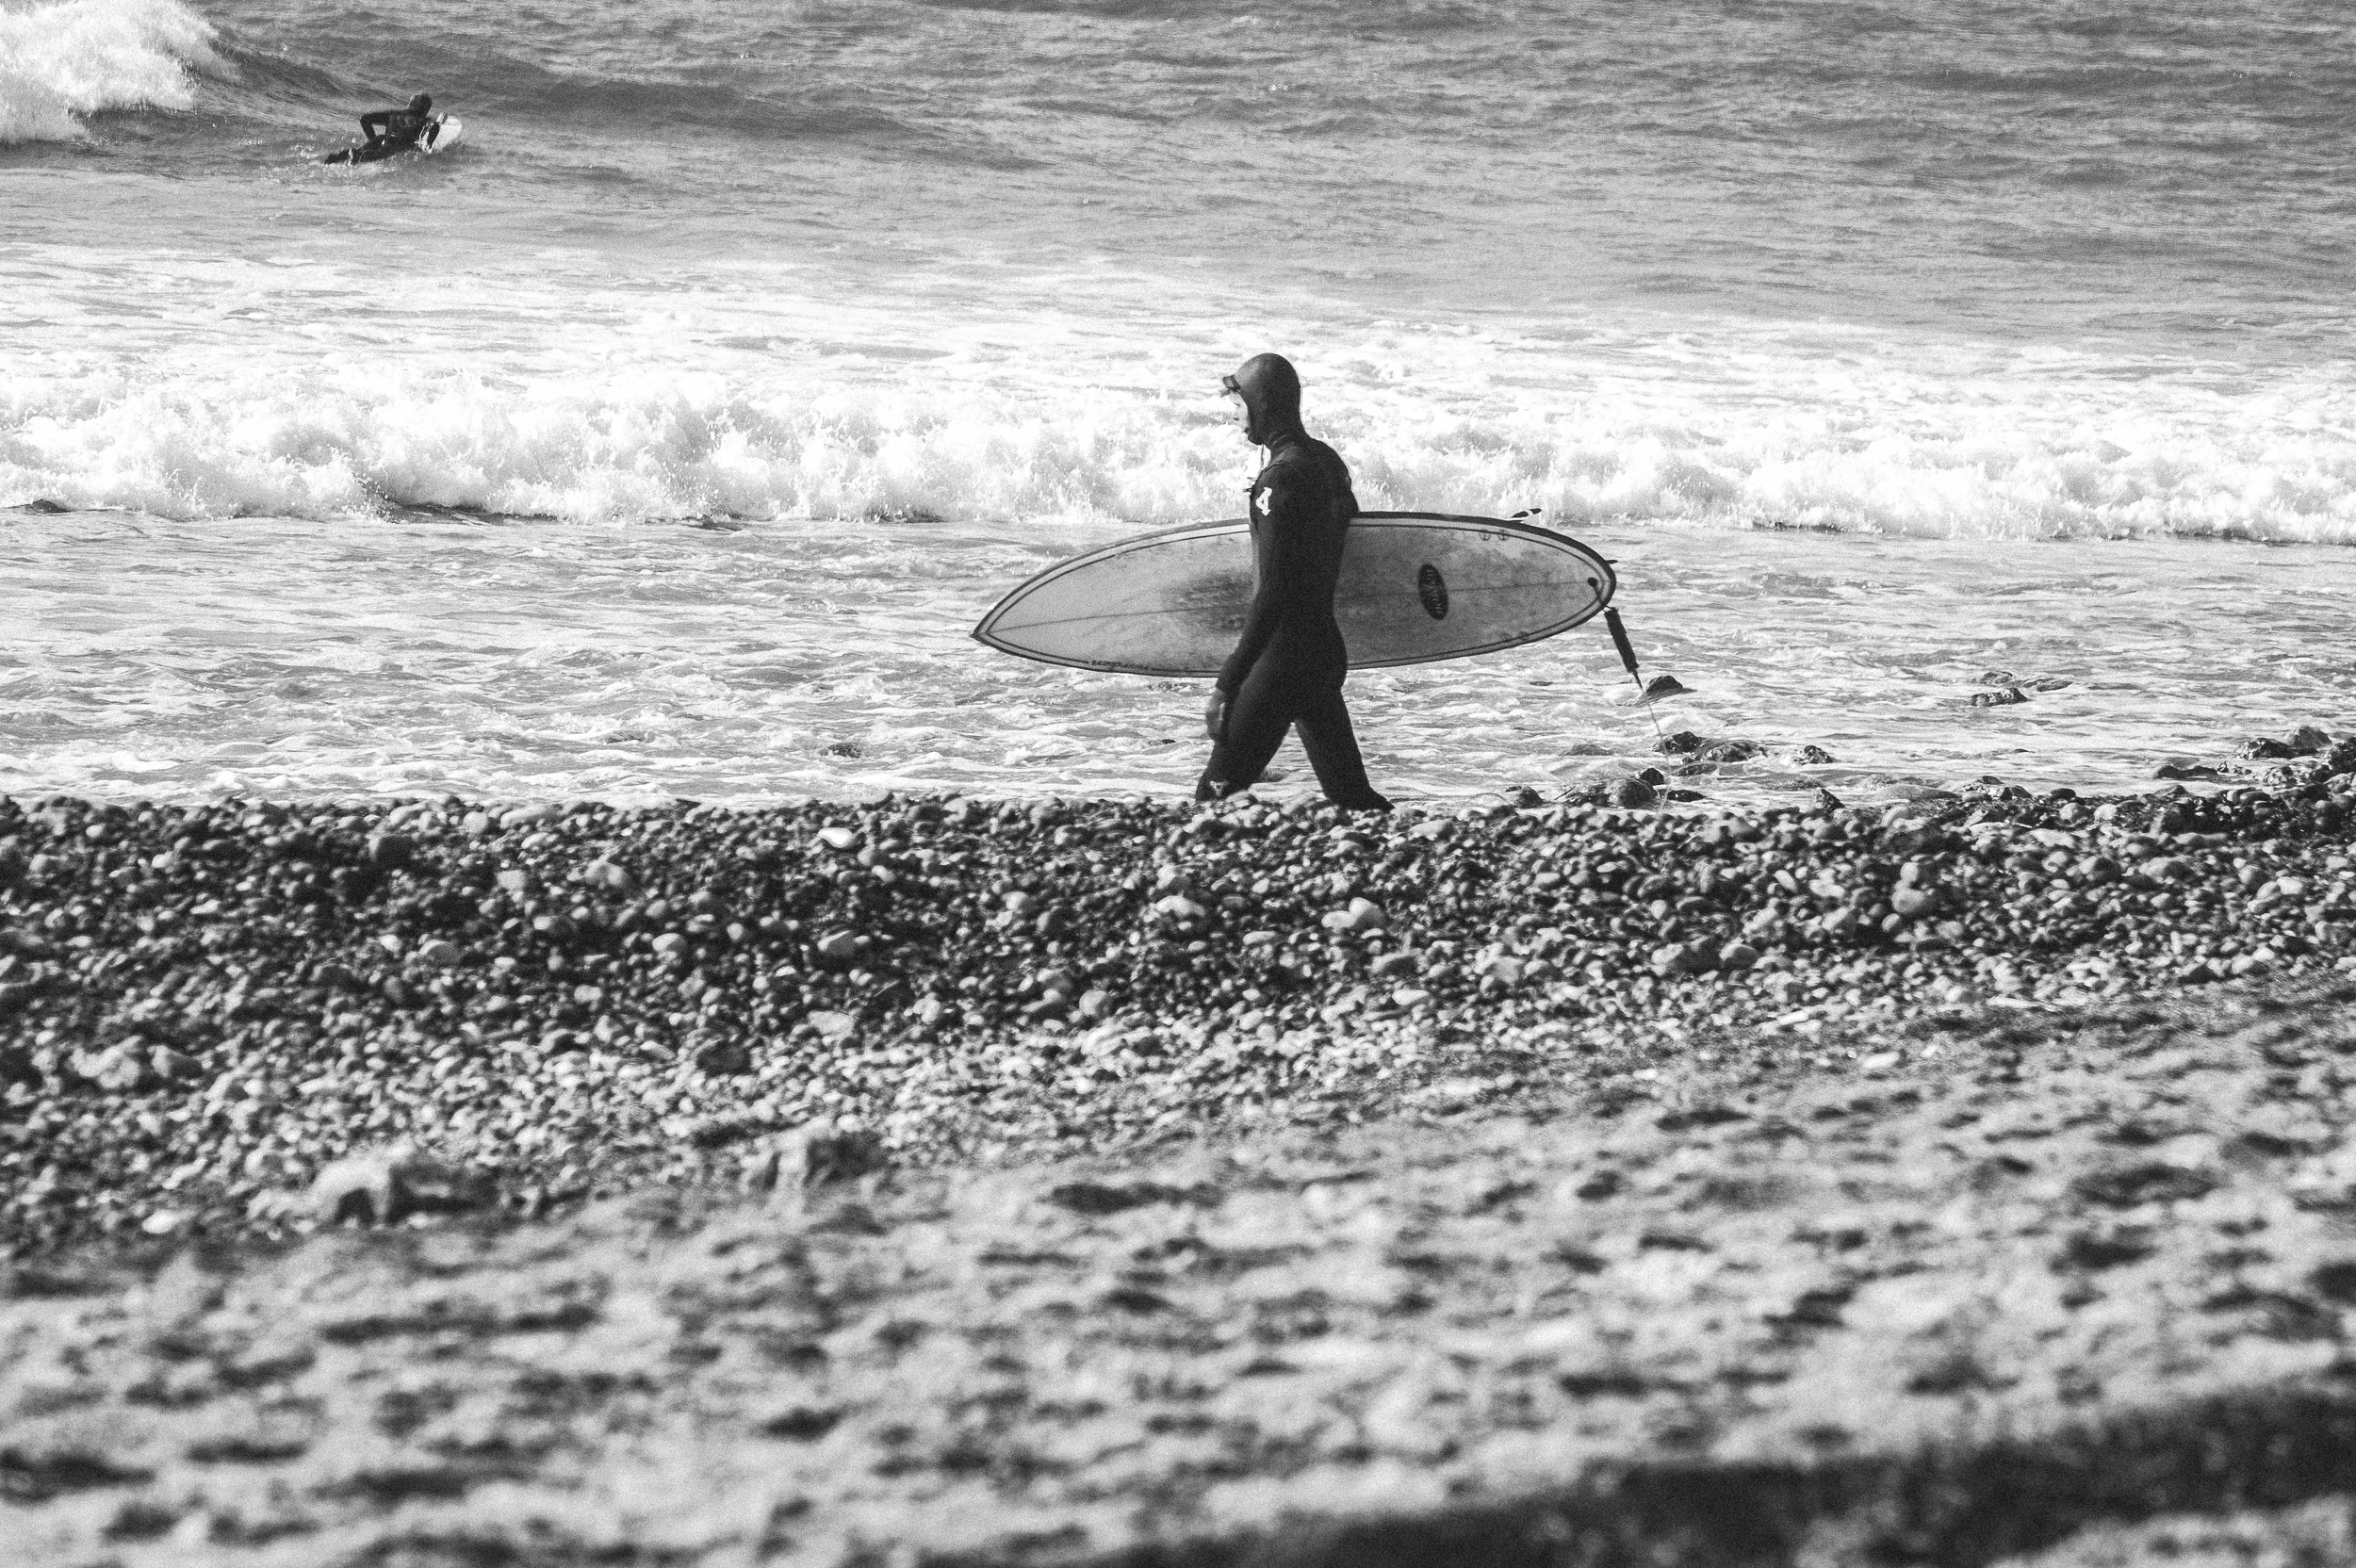 Surfer, Cold Hawaii, Denmark